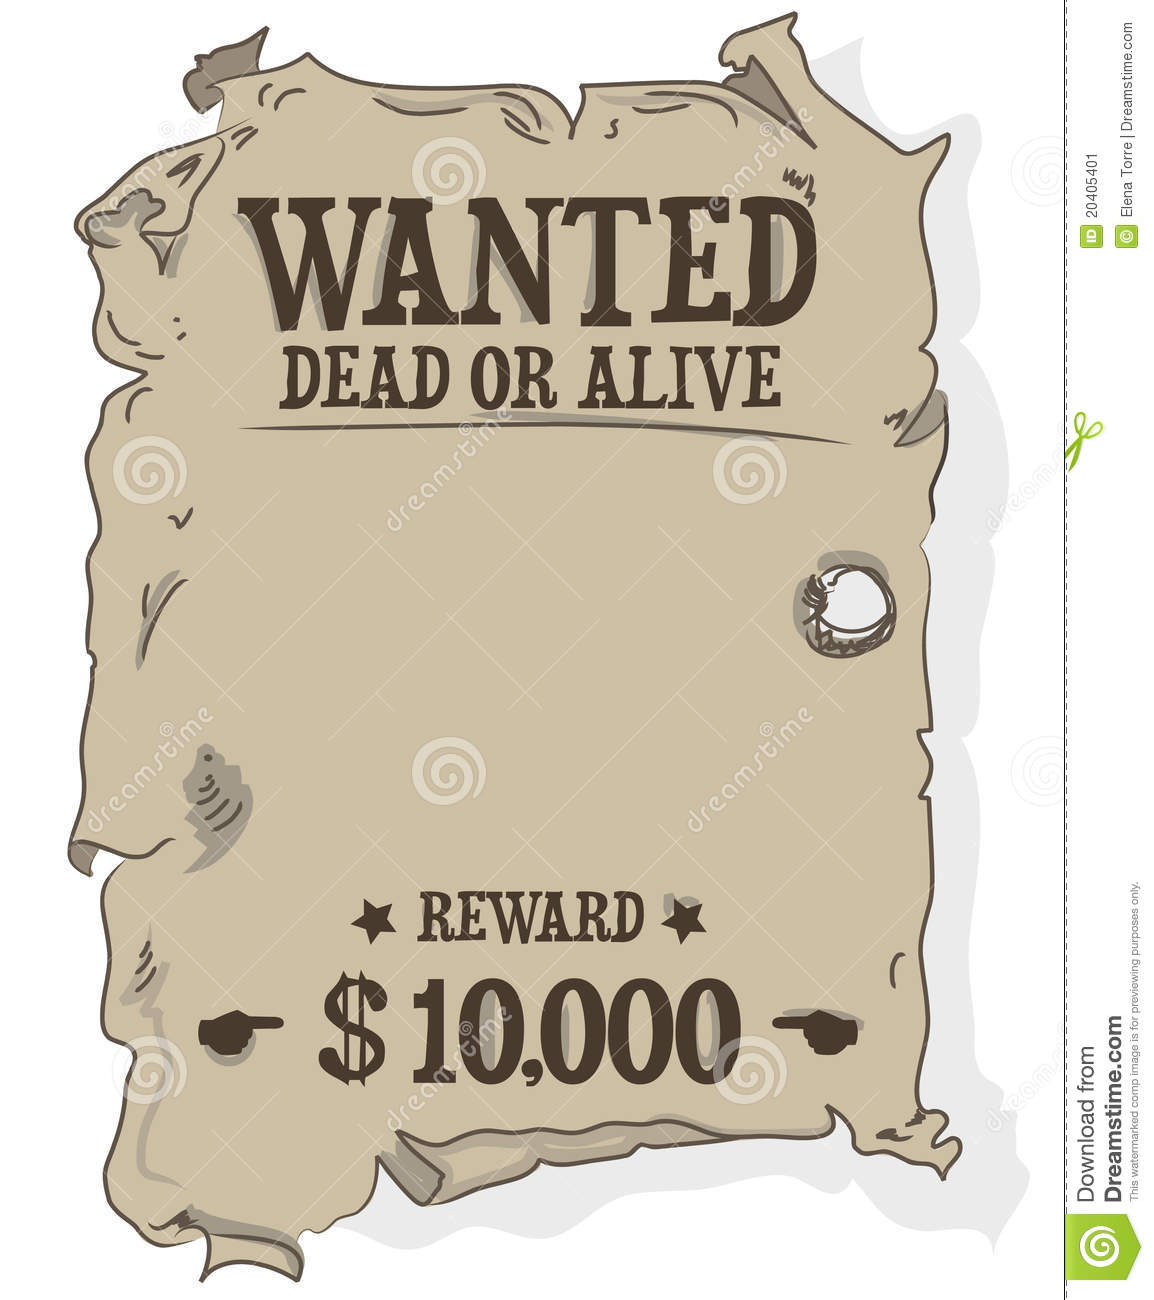 Wanted dead or alive - csp0927505